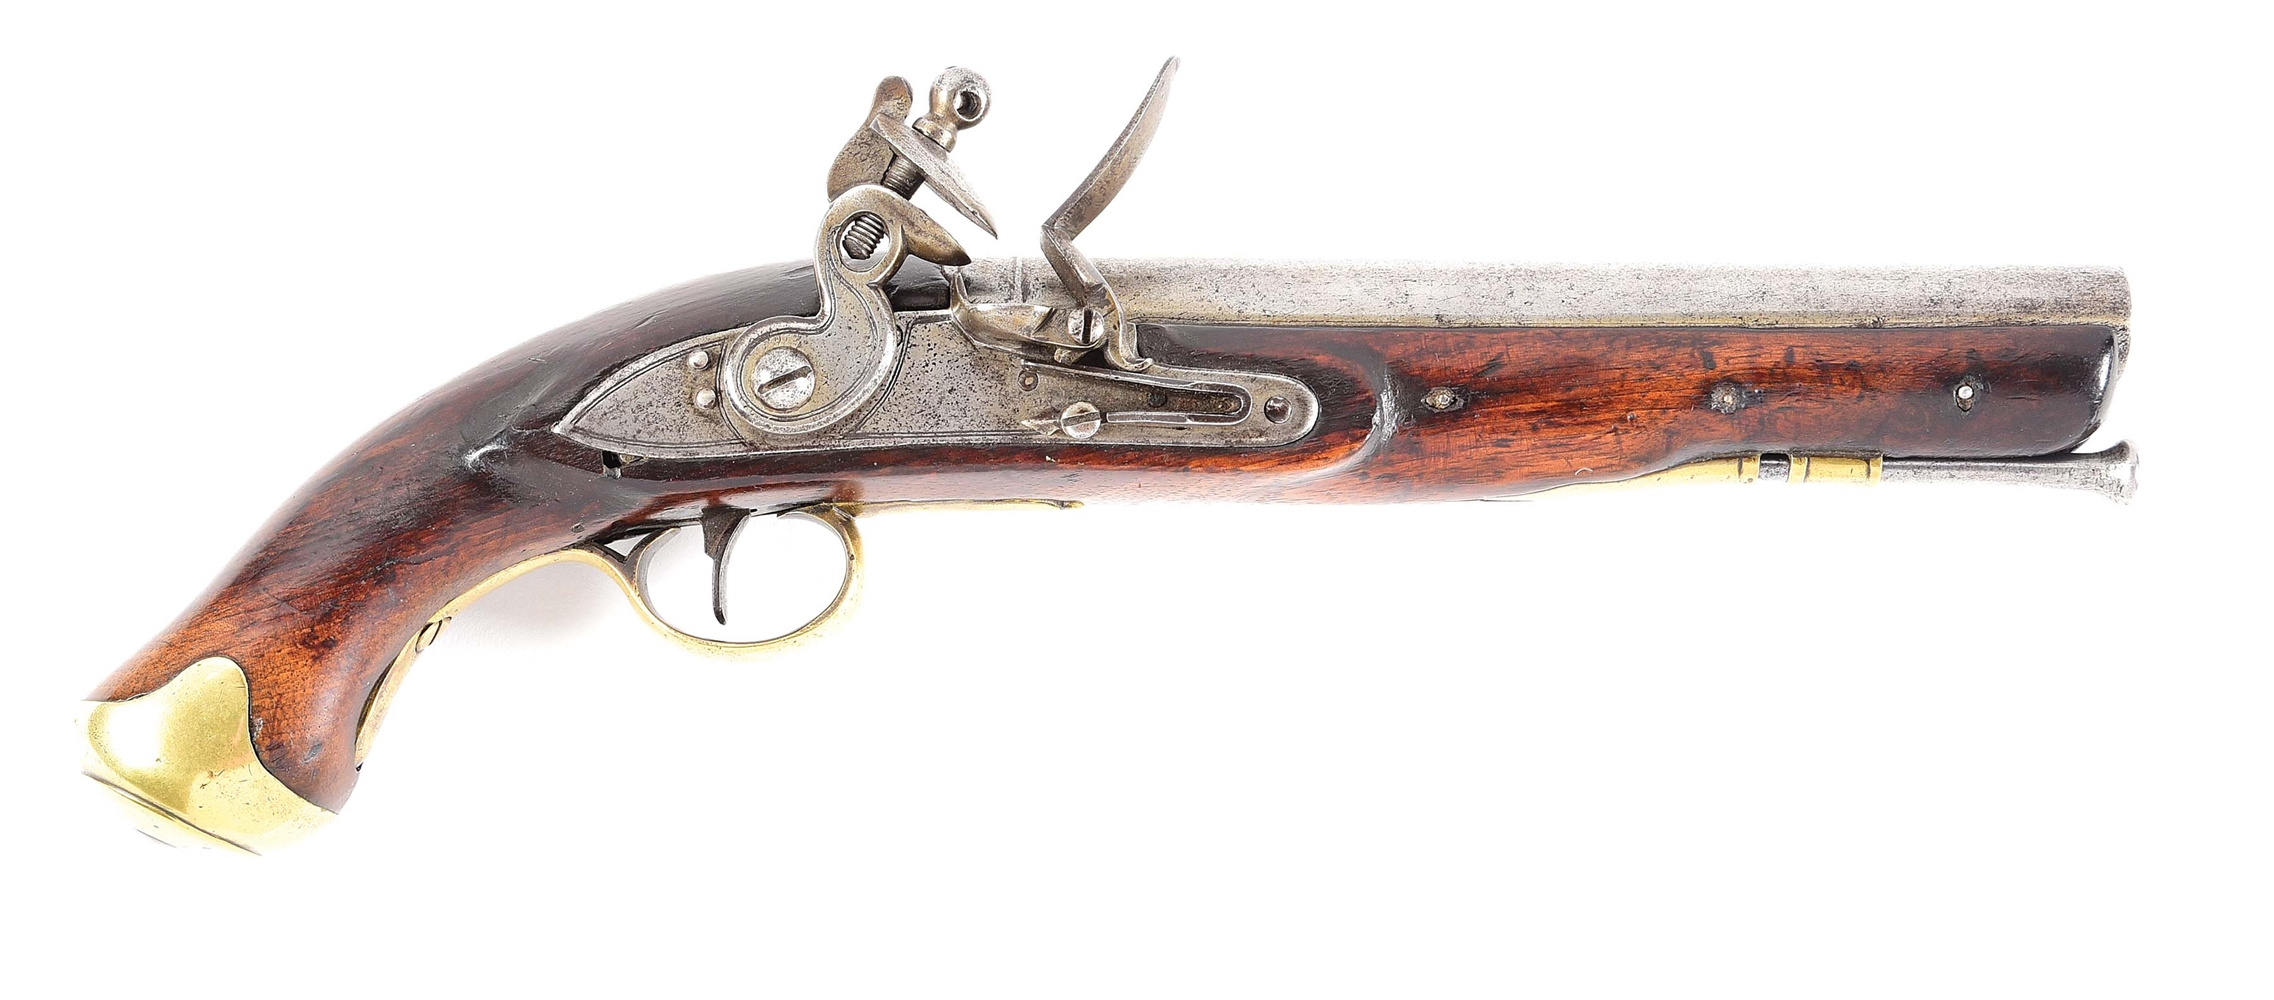 (A) A COMPOSITE BRITISH FLINTLOCK PISTOL IN THE STYLE OF AN EAST INDIA COMPANY PATTERN LIGHT DRAGOON.